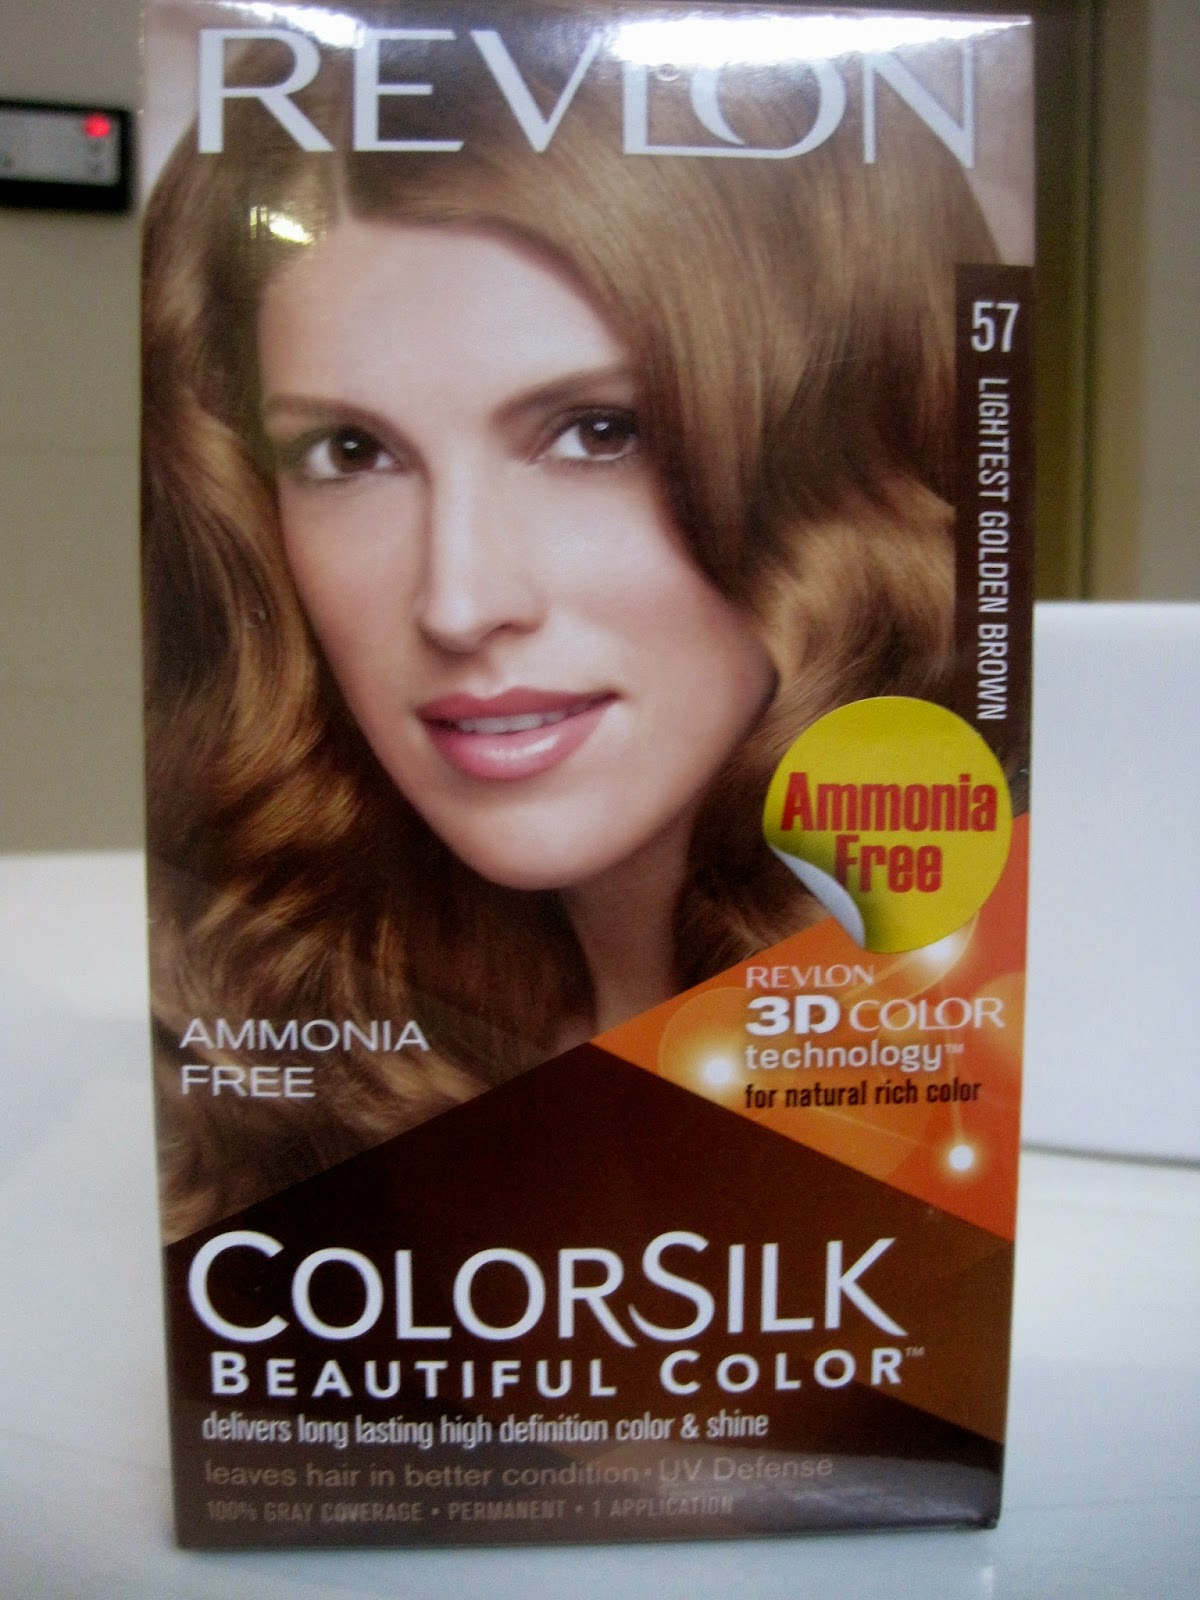 To Flawless Review Revlon Colorsilk Blonde Ish